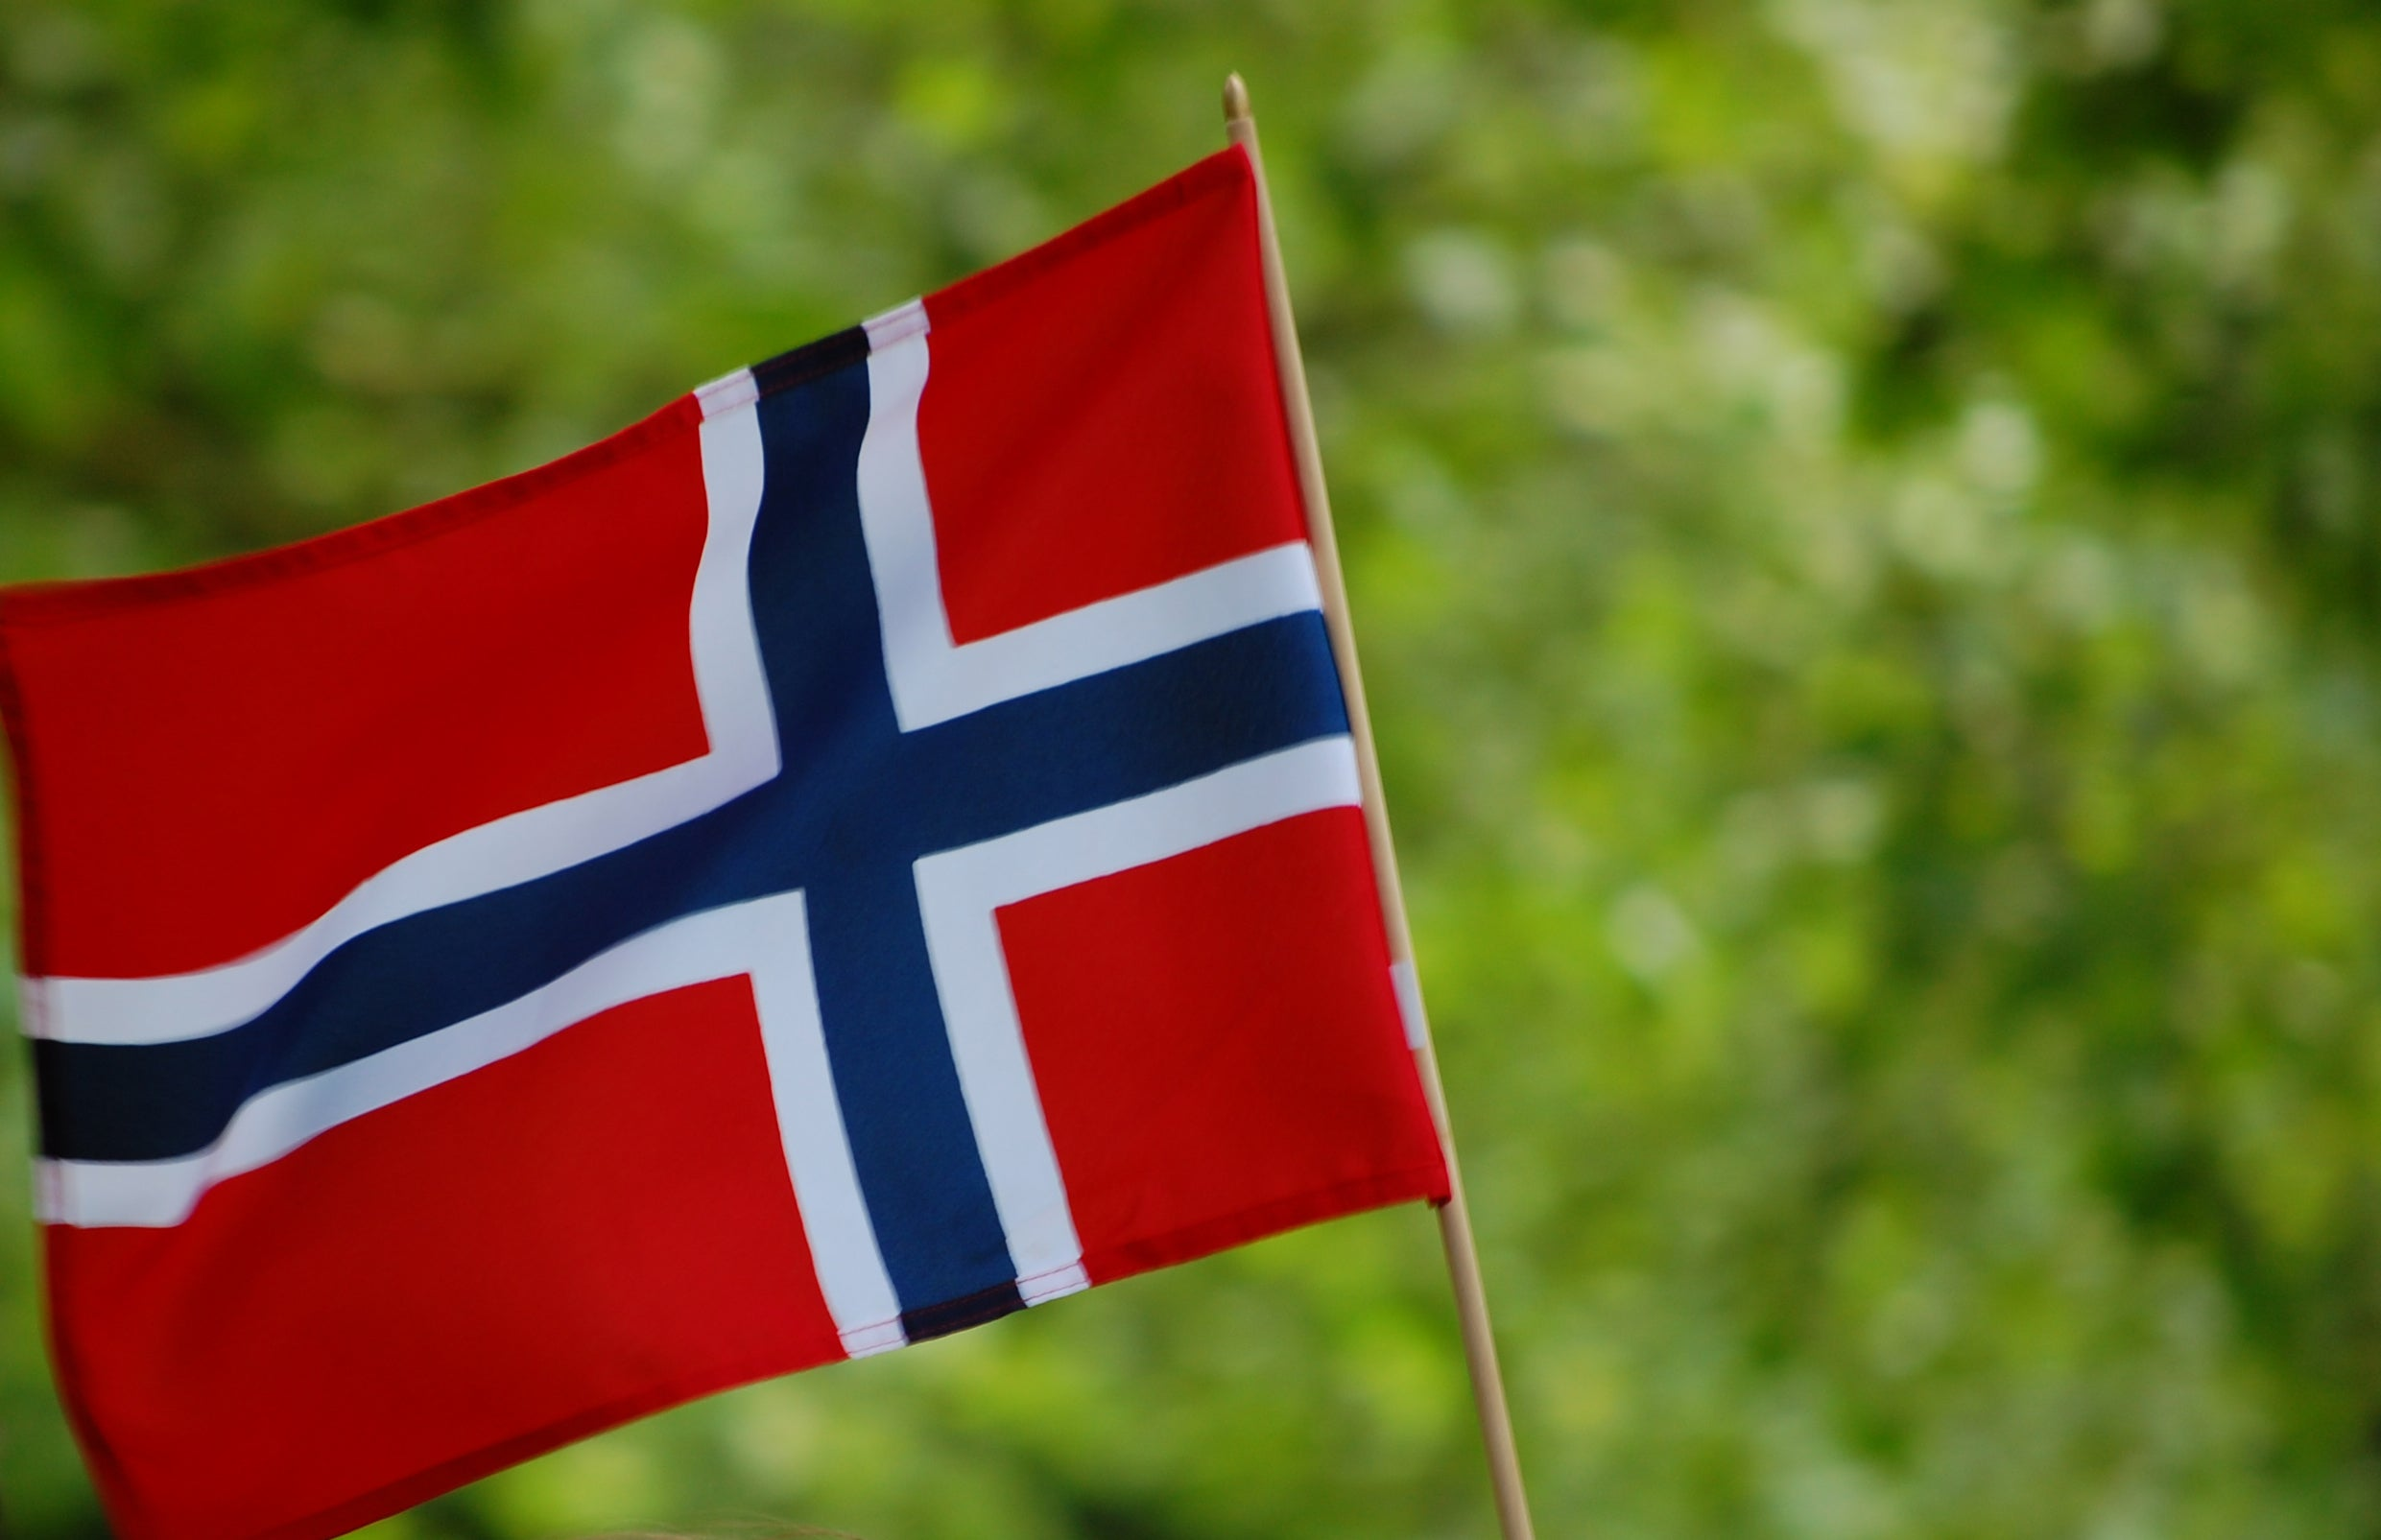 Without a general election, Norway plus is our best option